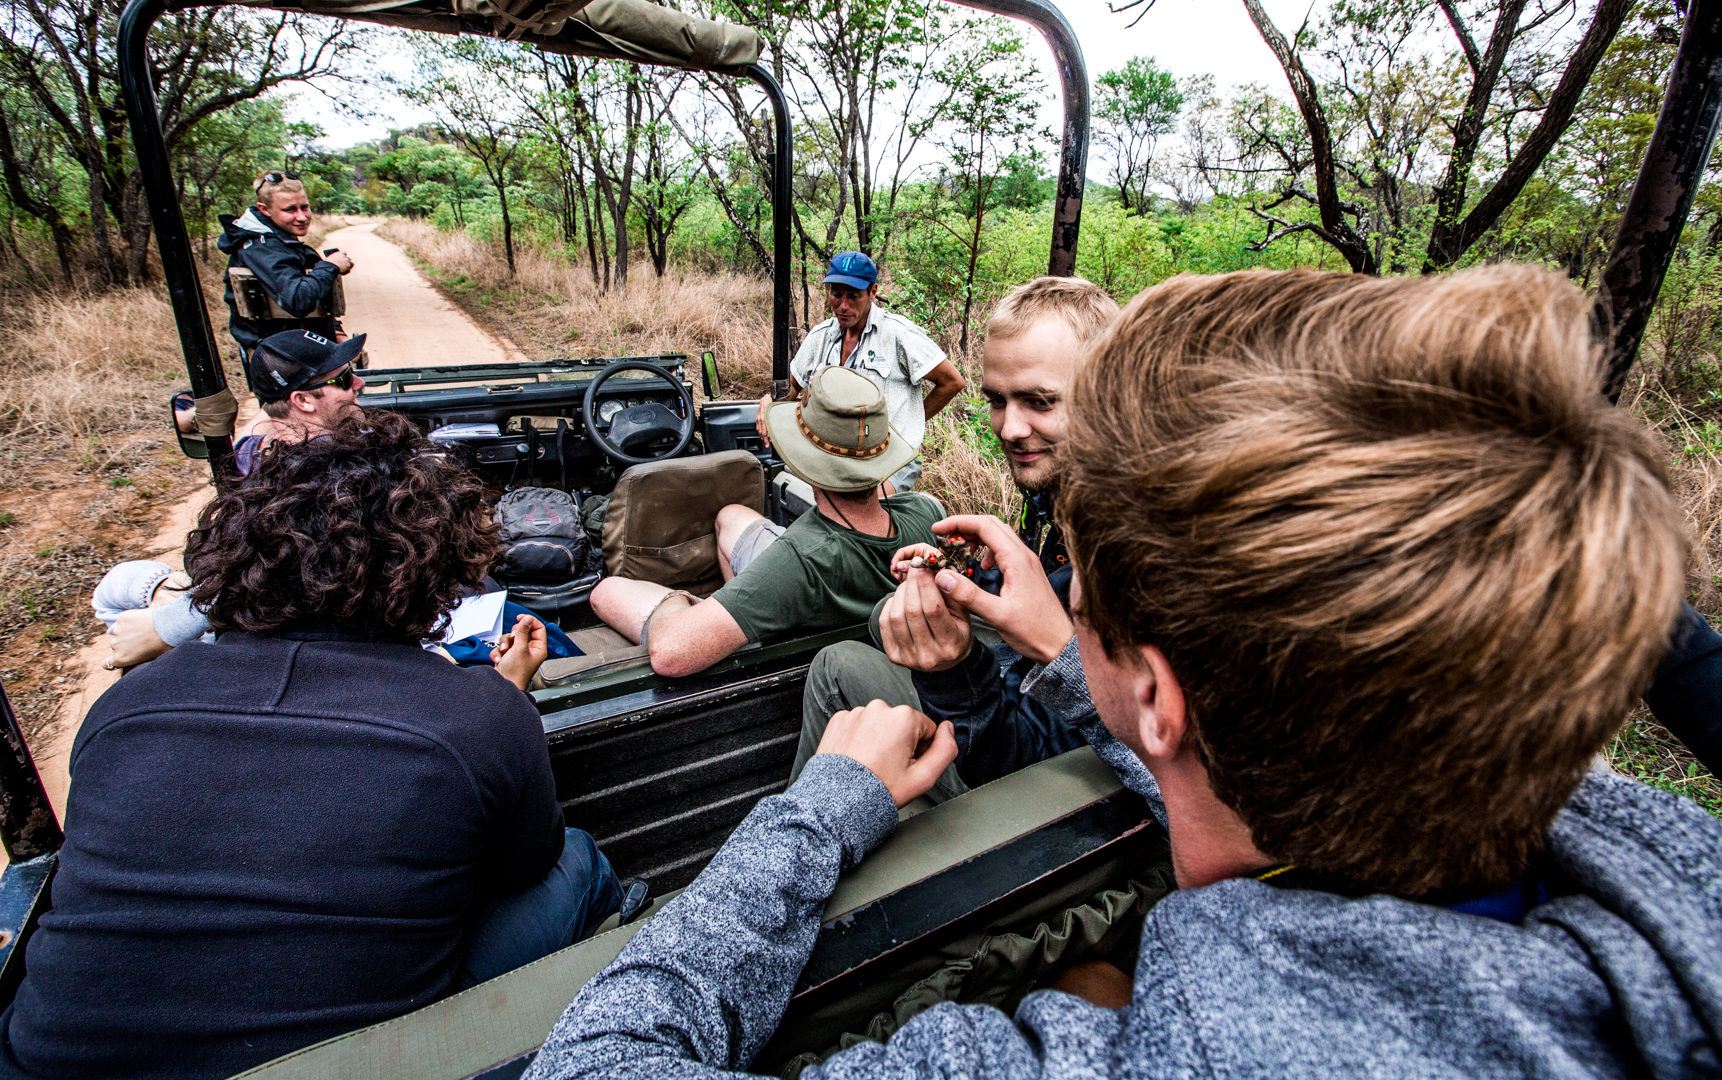 One of the highlights of my trip was going on a safari. Here, we're spotting for rhinos.